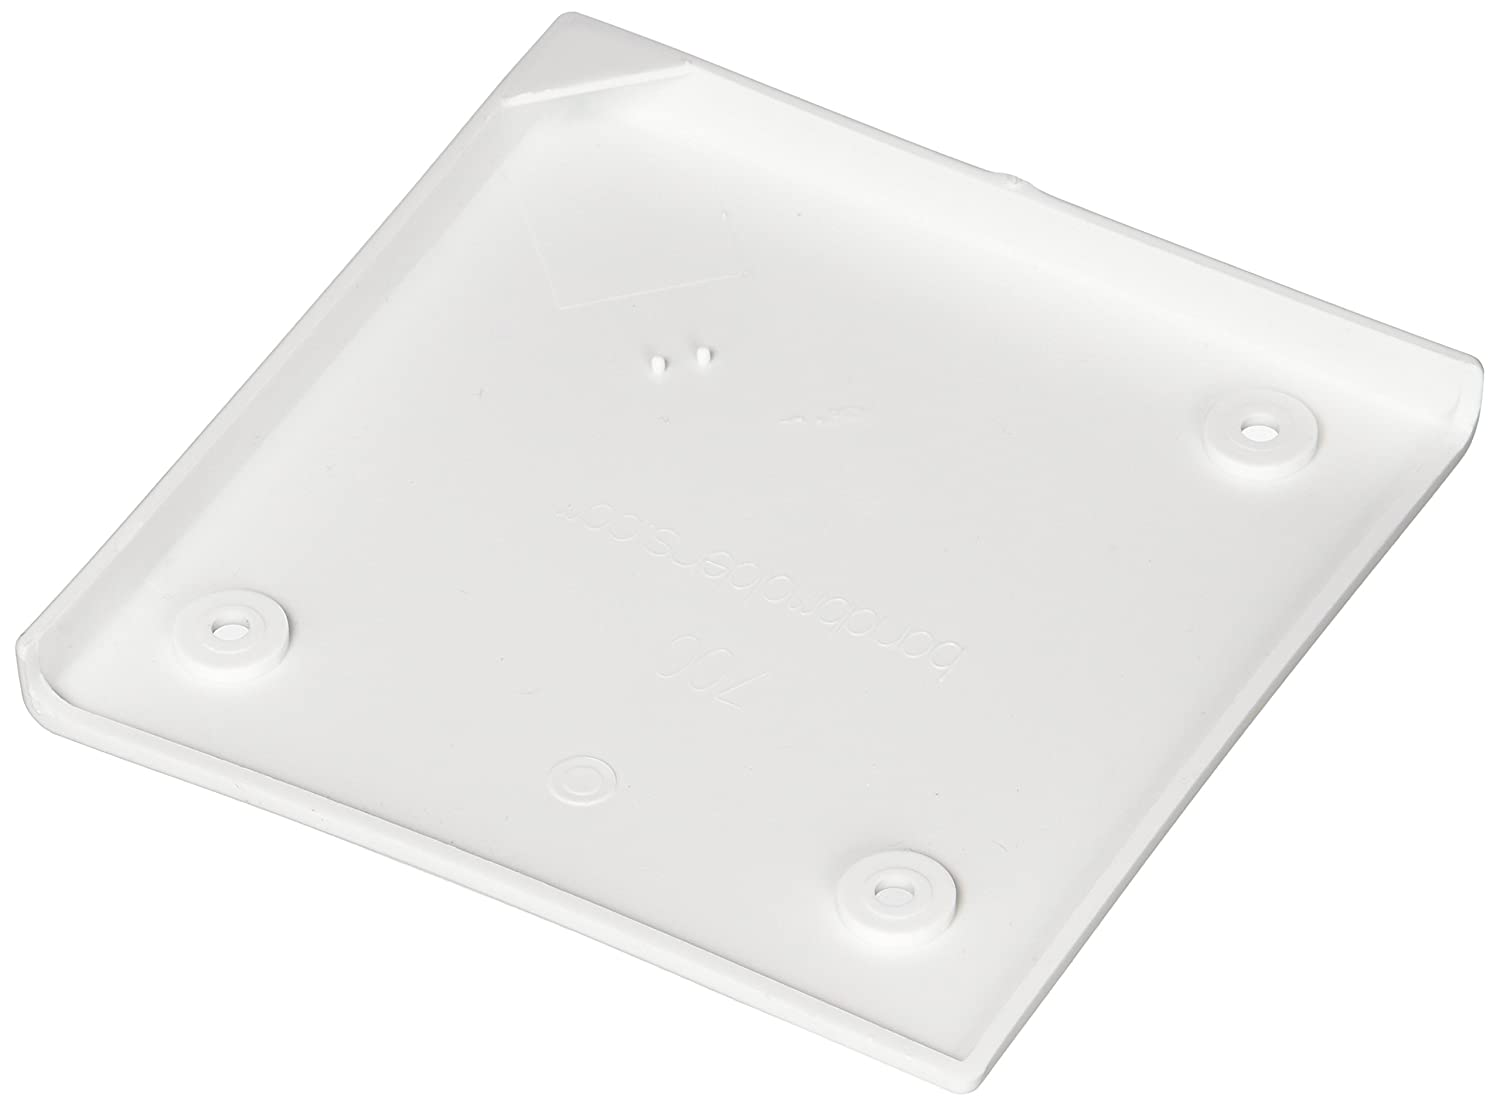 JR Products 55911 Slide Out Extrusion Cover